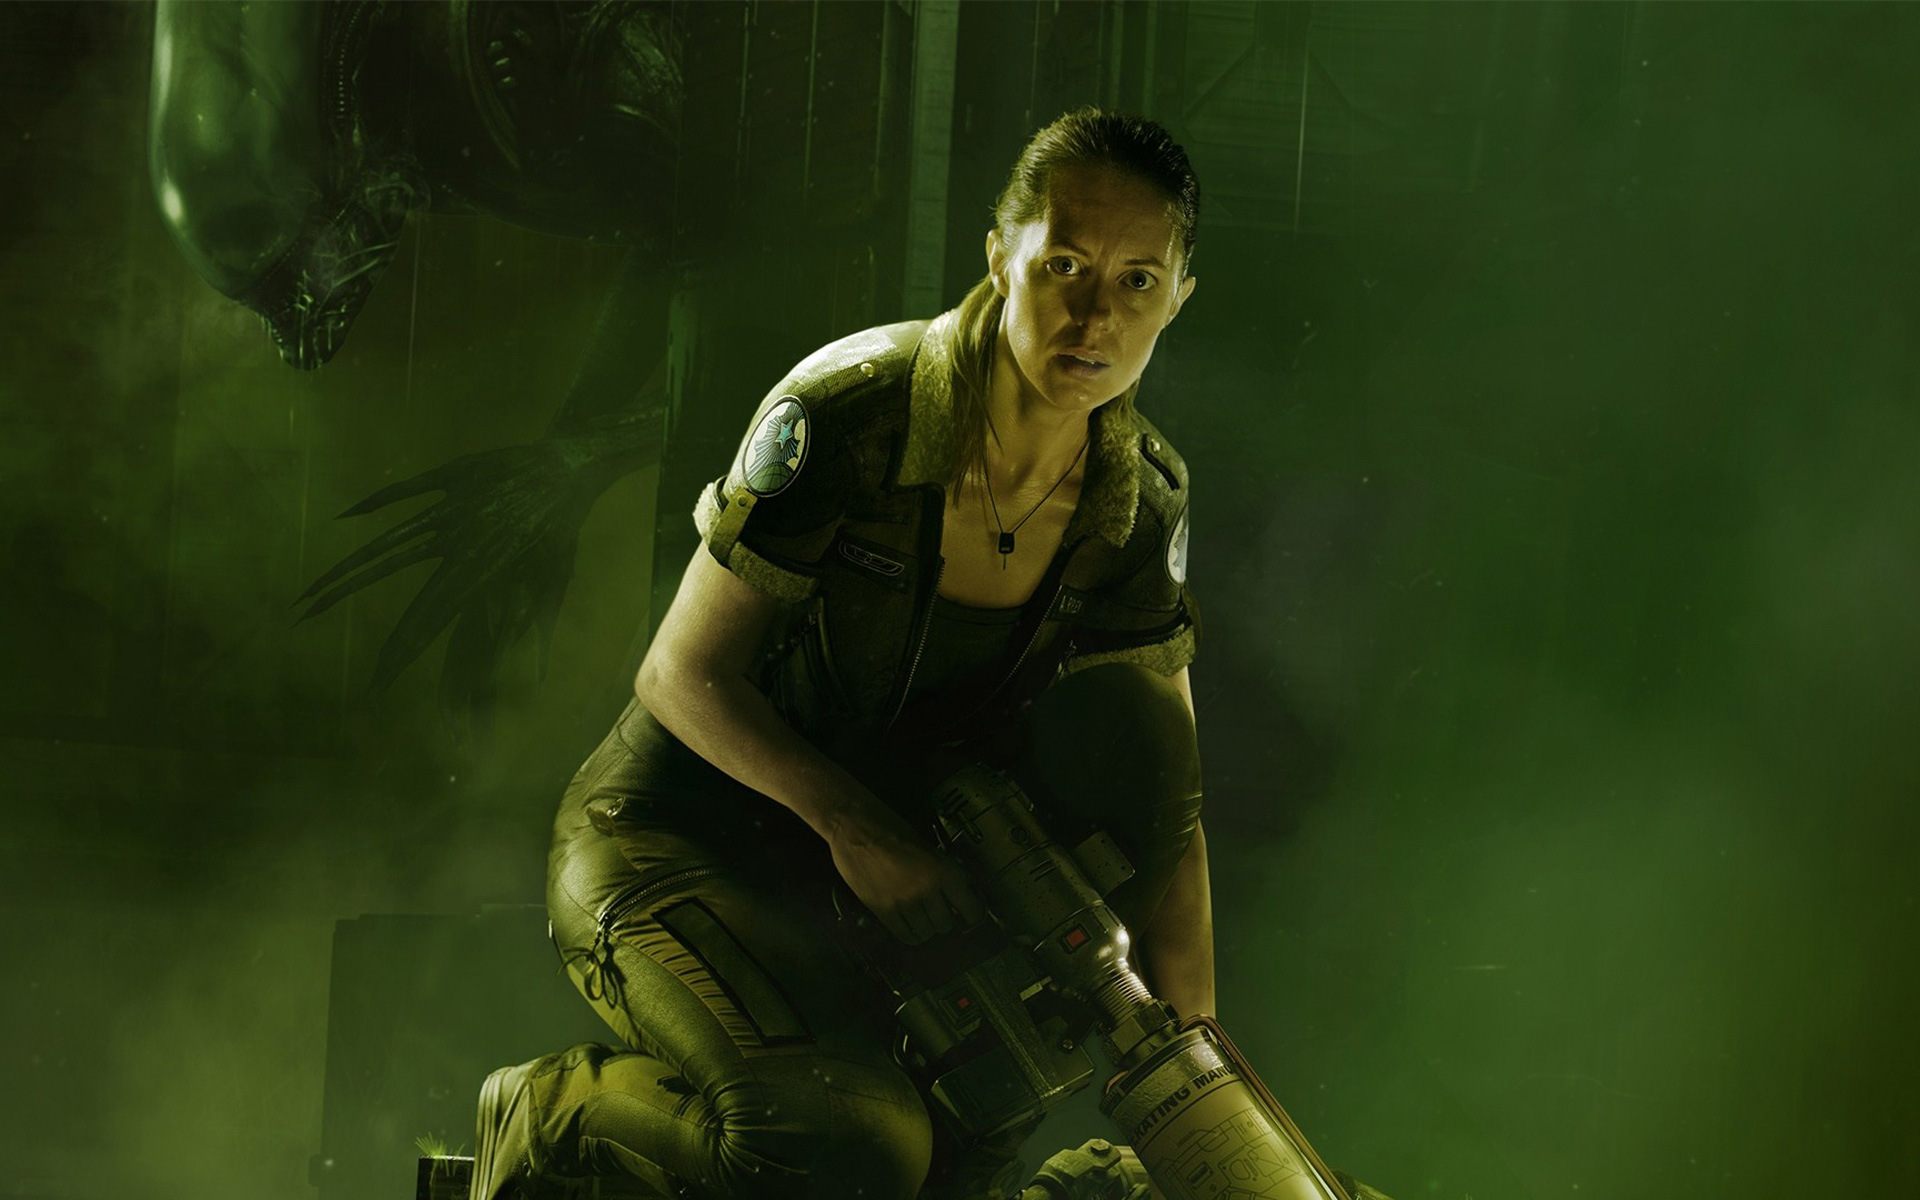 alien-isolation-behind-you-02-1920x1200.jpg